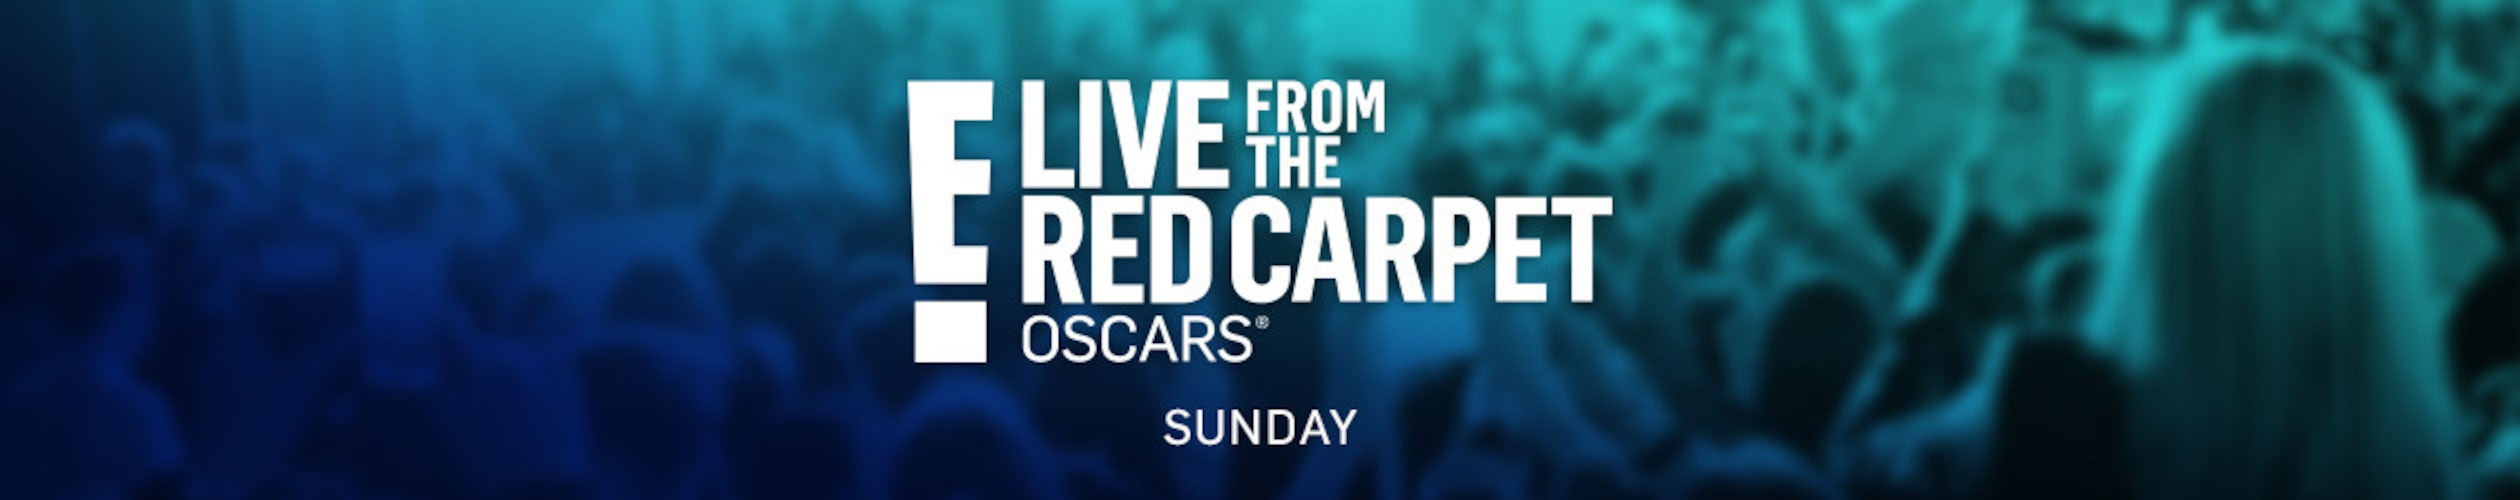 2019 Oscars DT FD Tune In SUNDAY